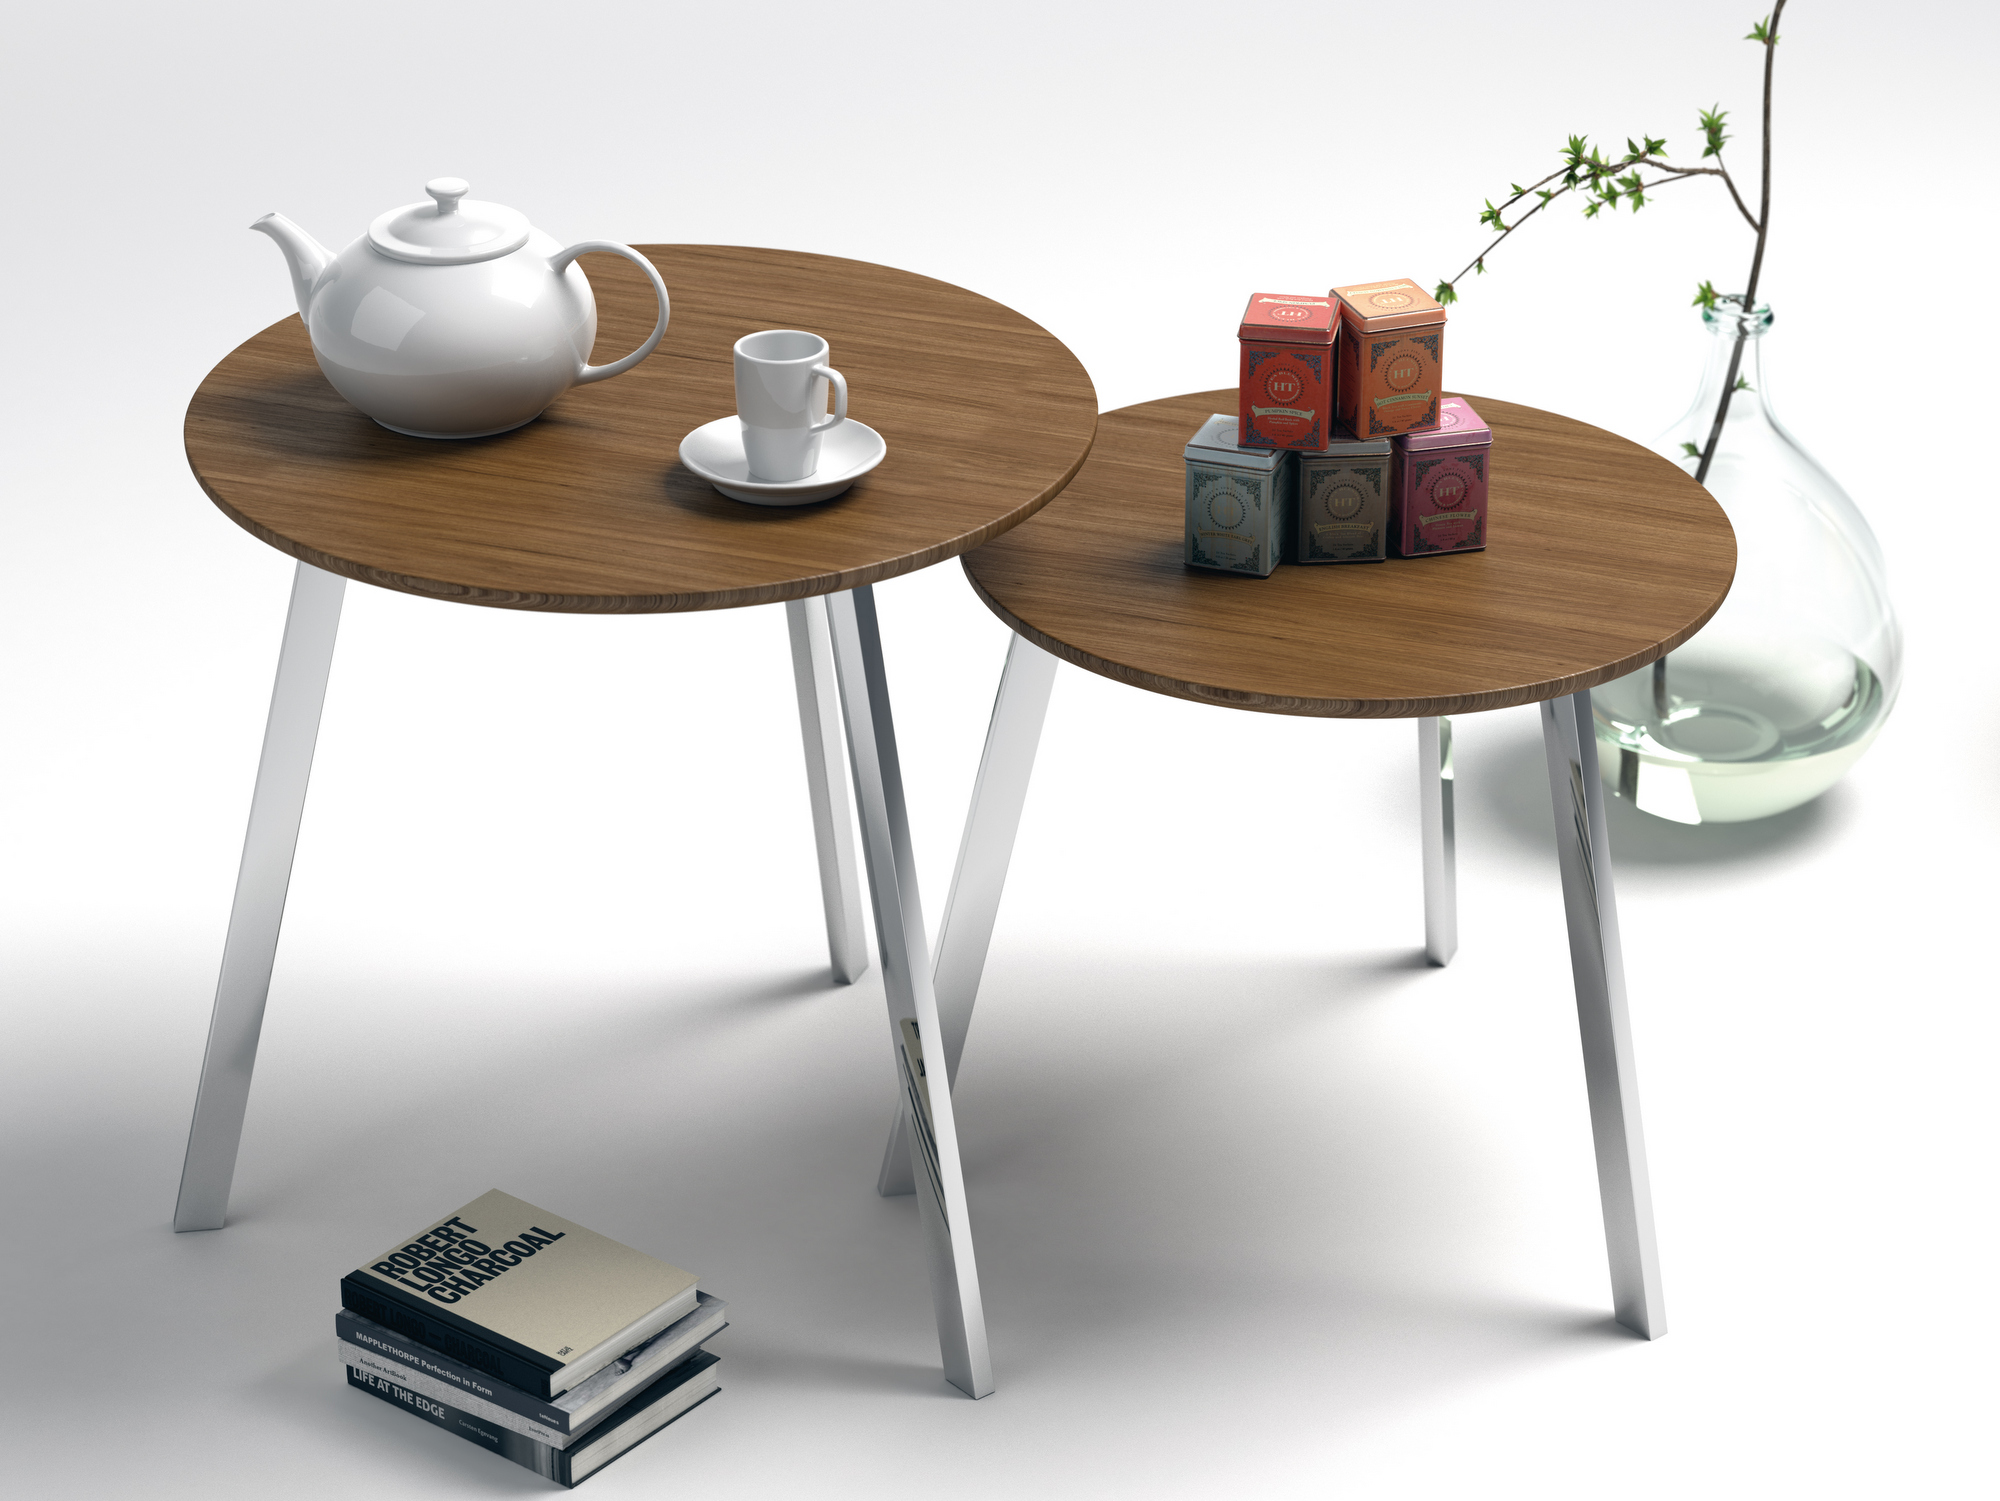 Stil Steel And Wood Coffee Table Stil Collection By Altinox Minimal Design Design Sergio Cordero